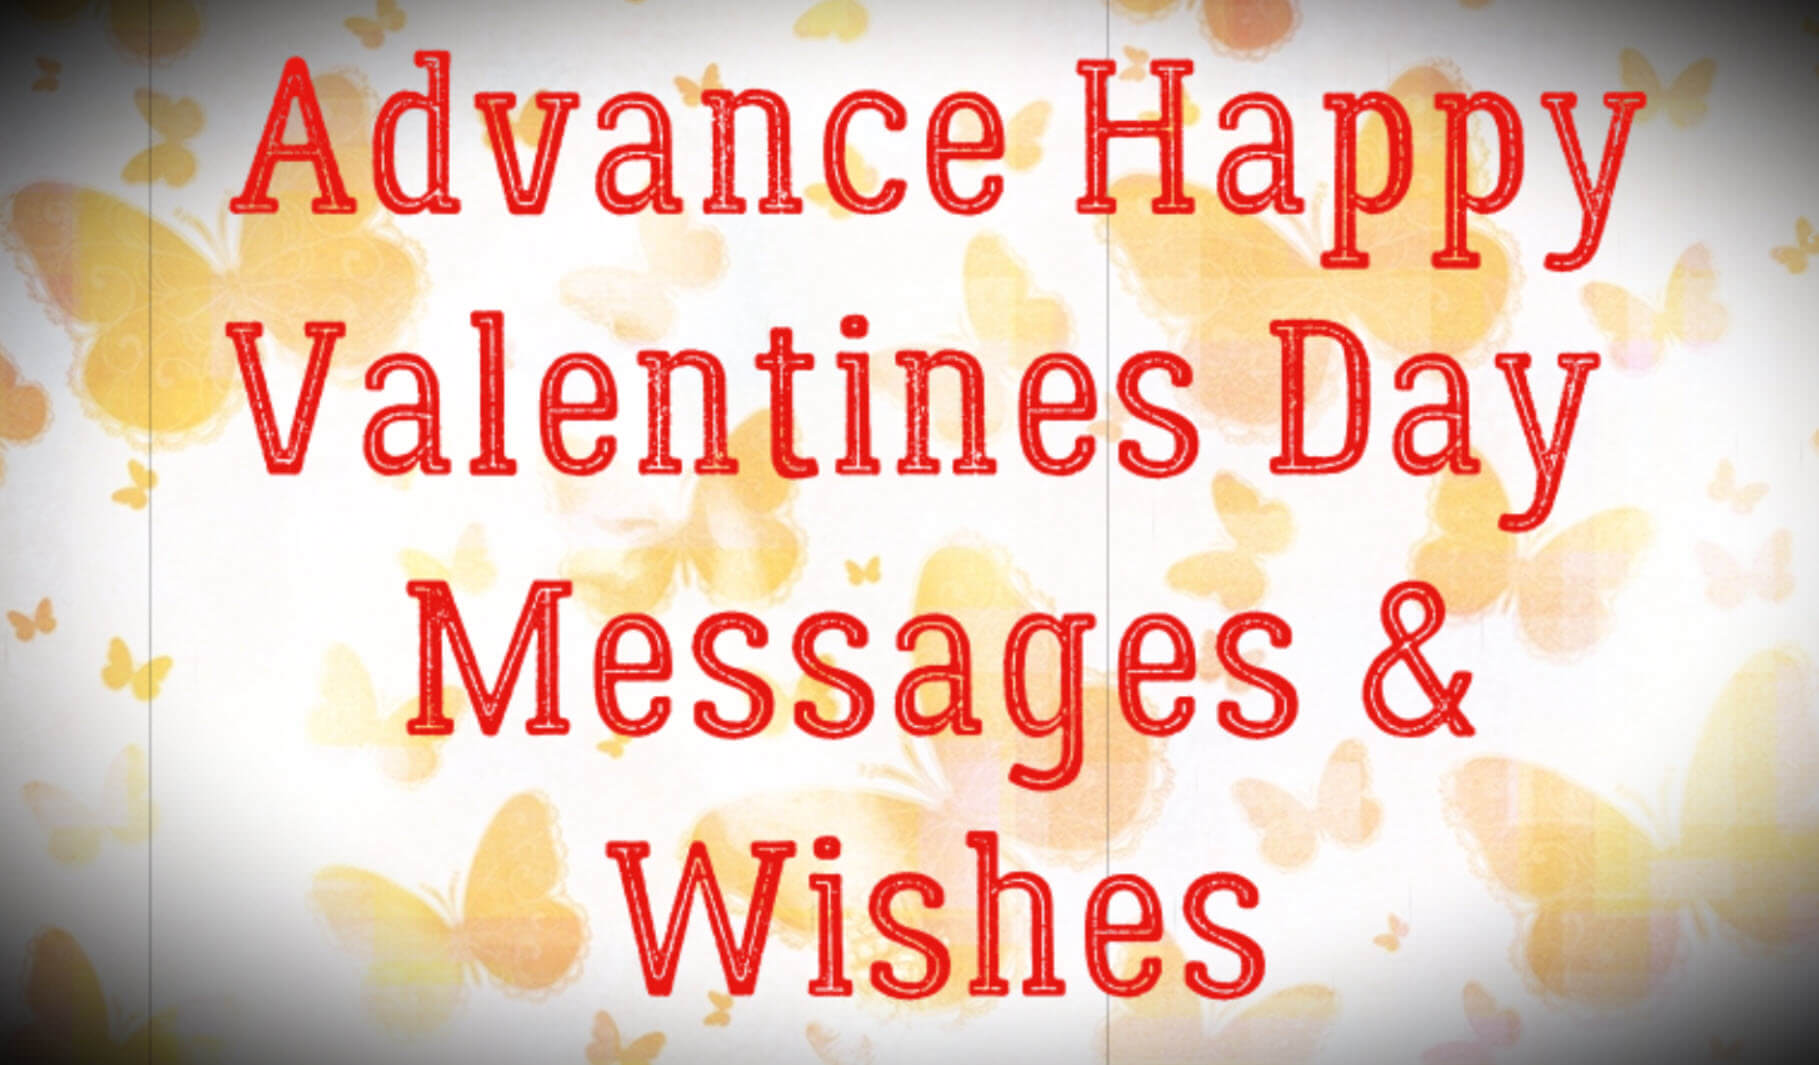 Advance Happy Valentines Day Messages & Wishes